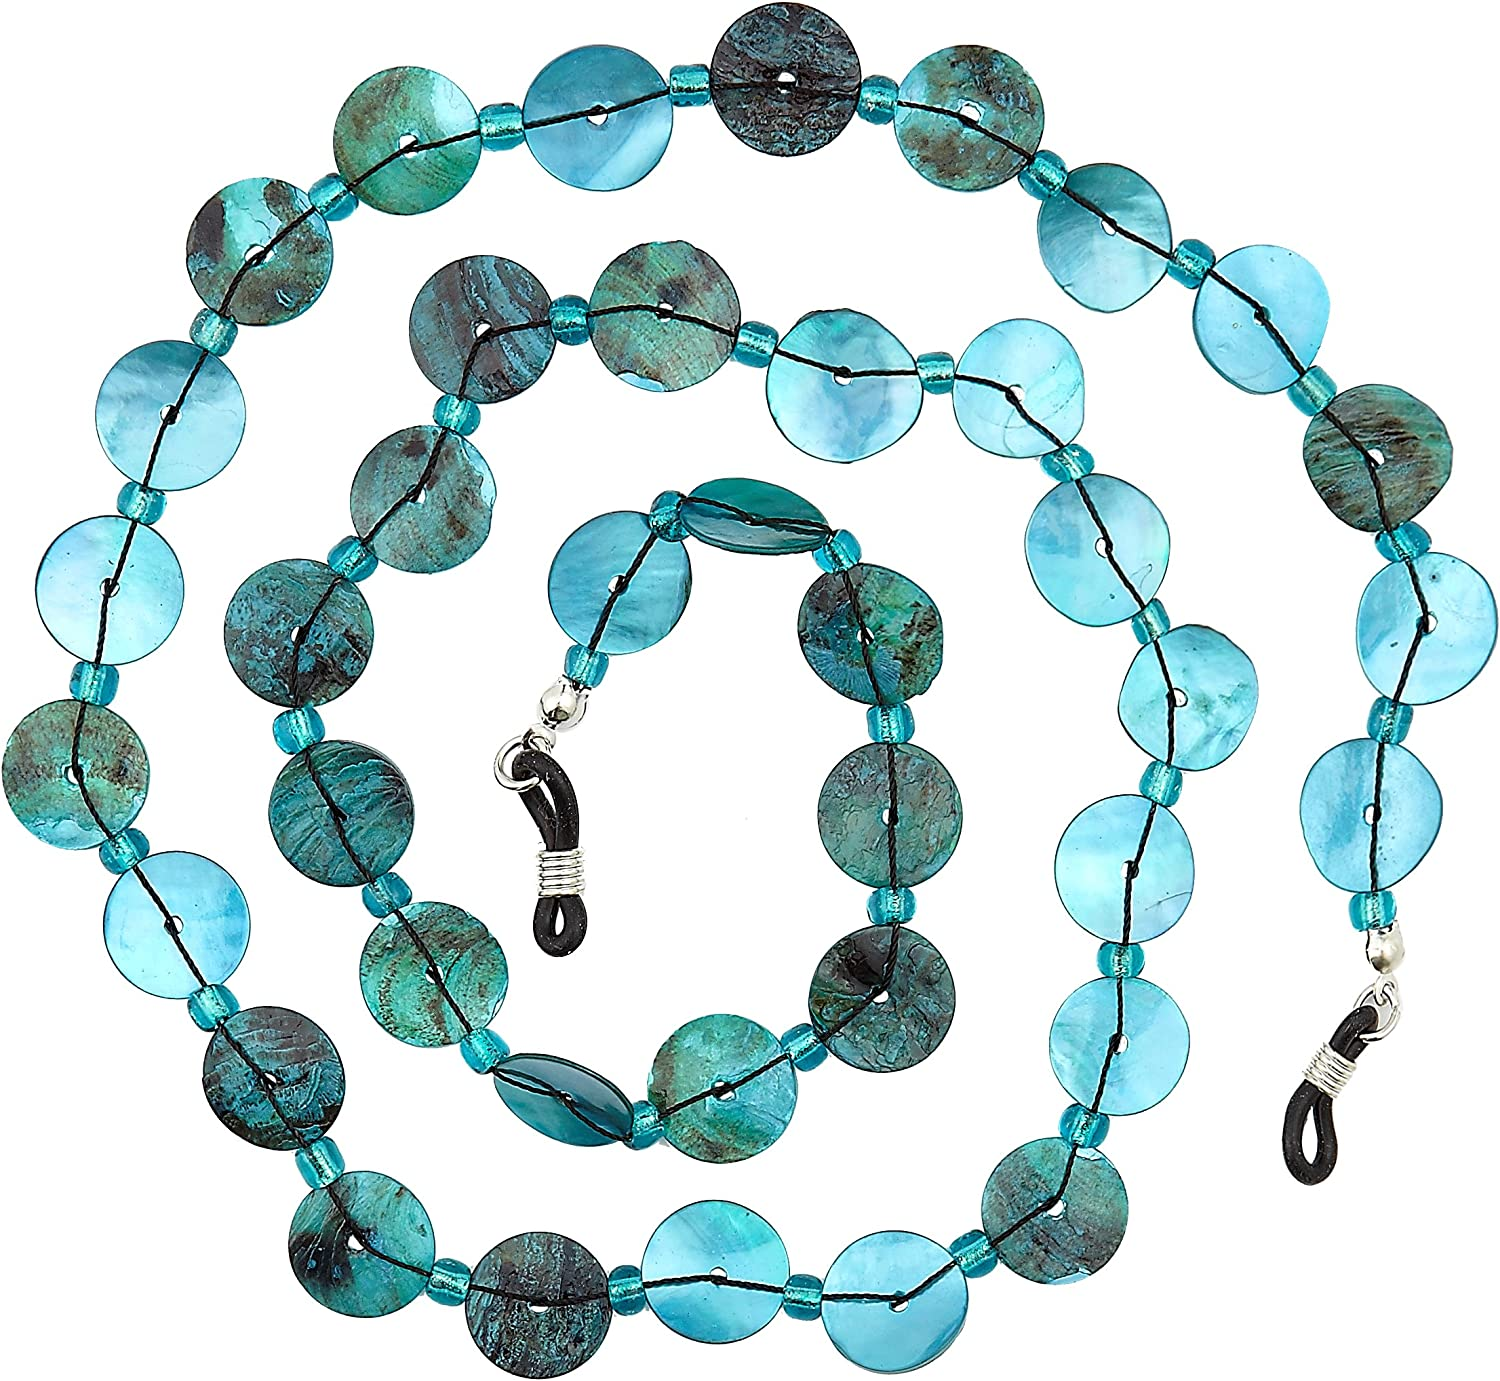 Beaded Glass Eyeglass Chain Holder Fashion Lanyard Necklace